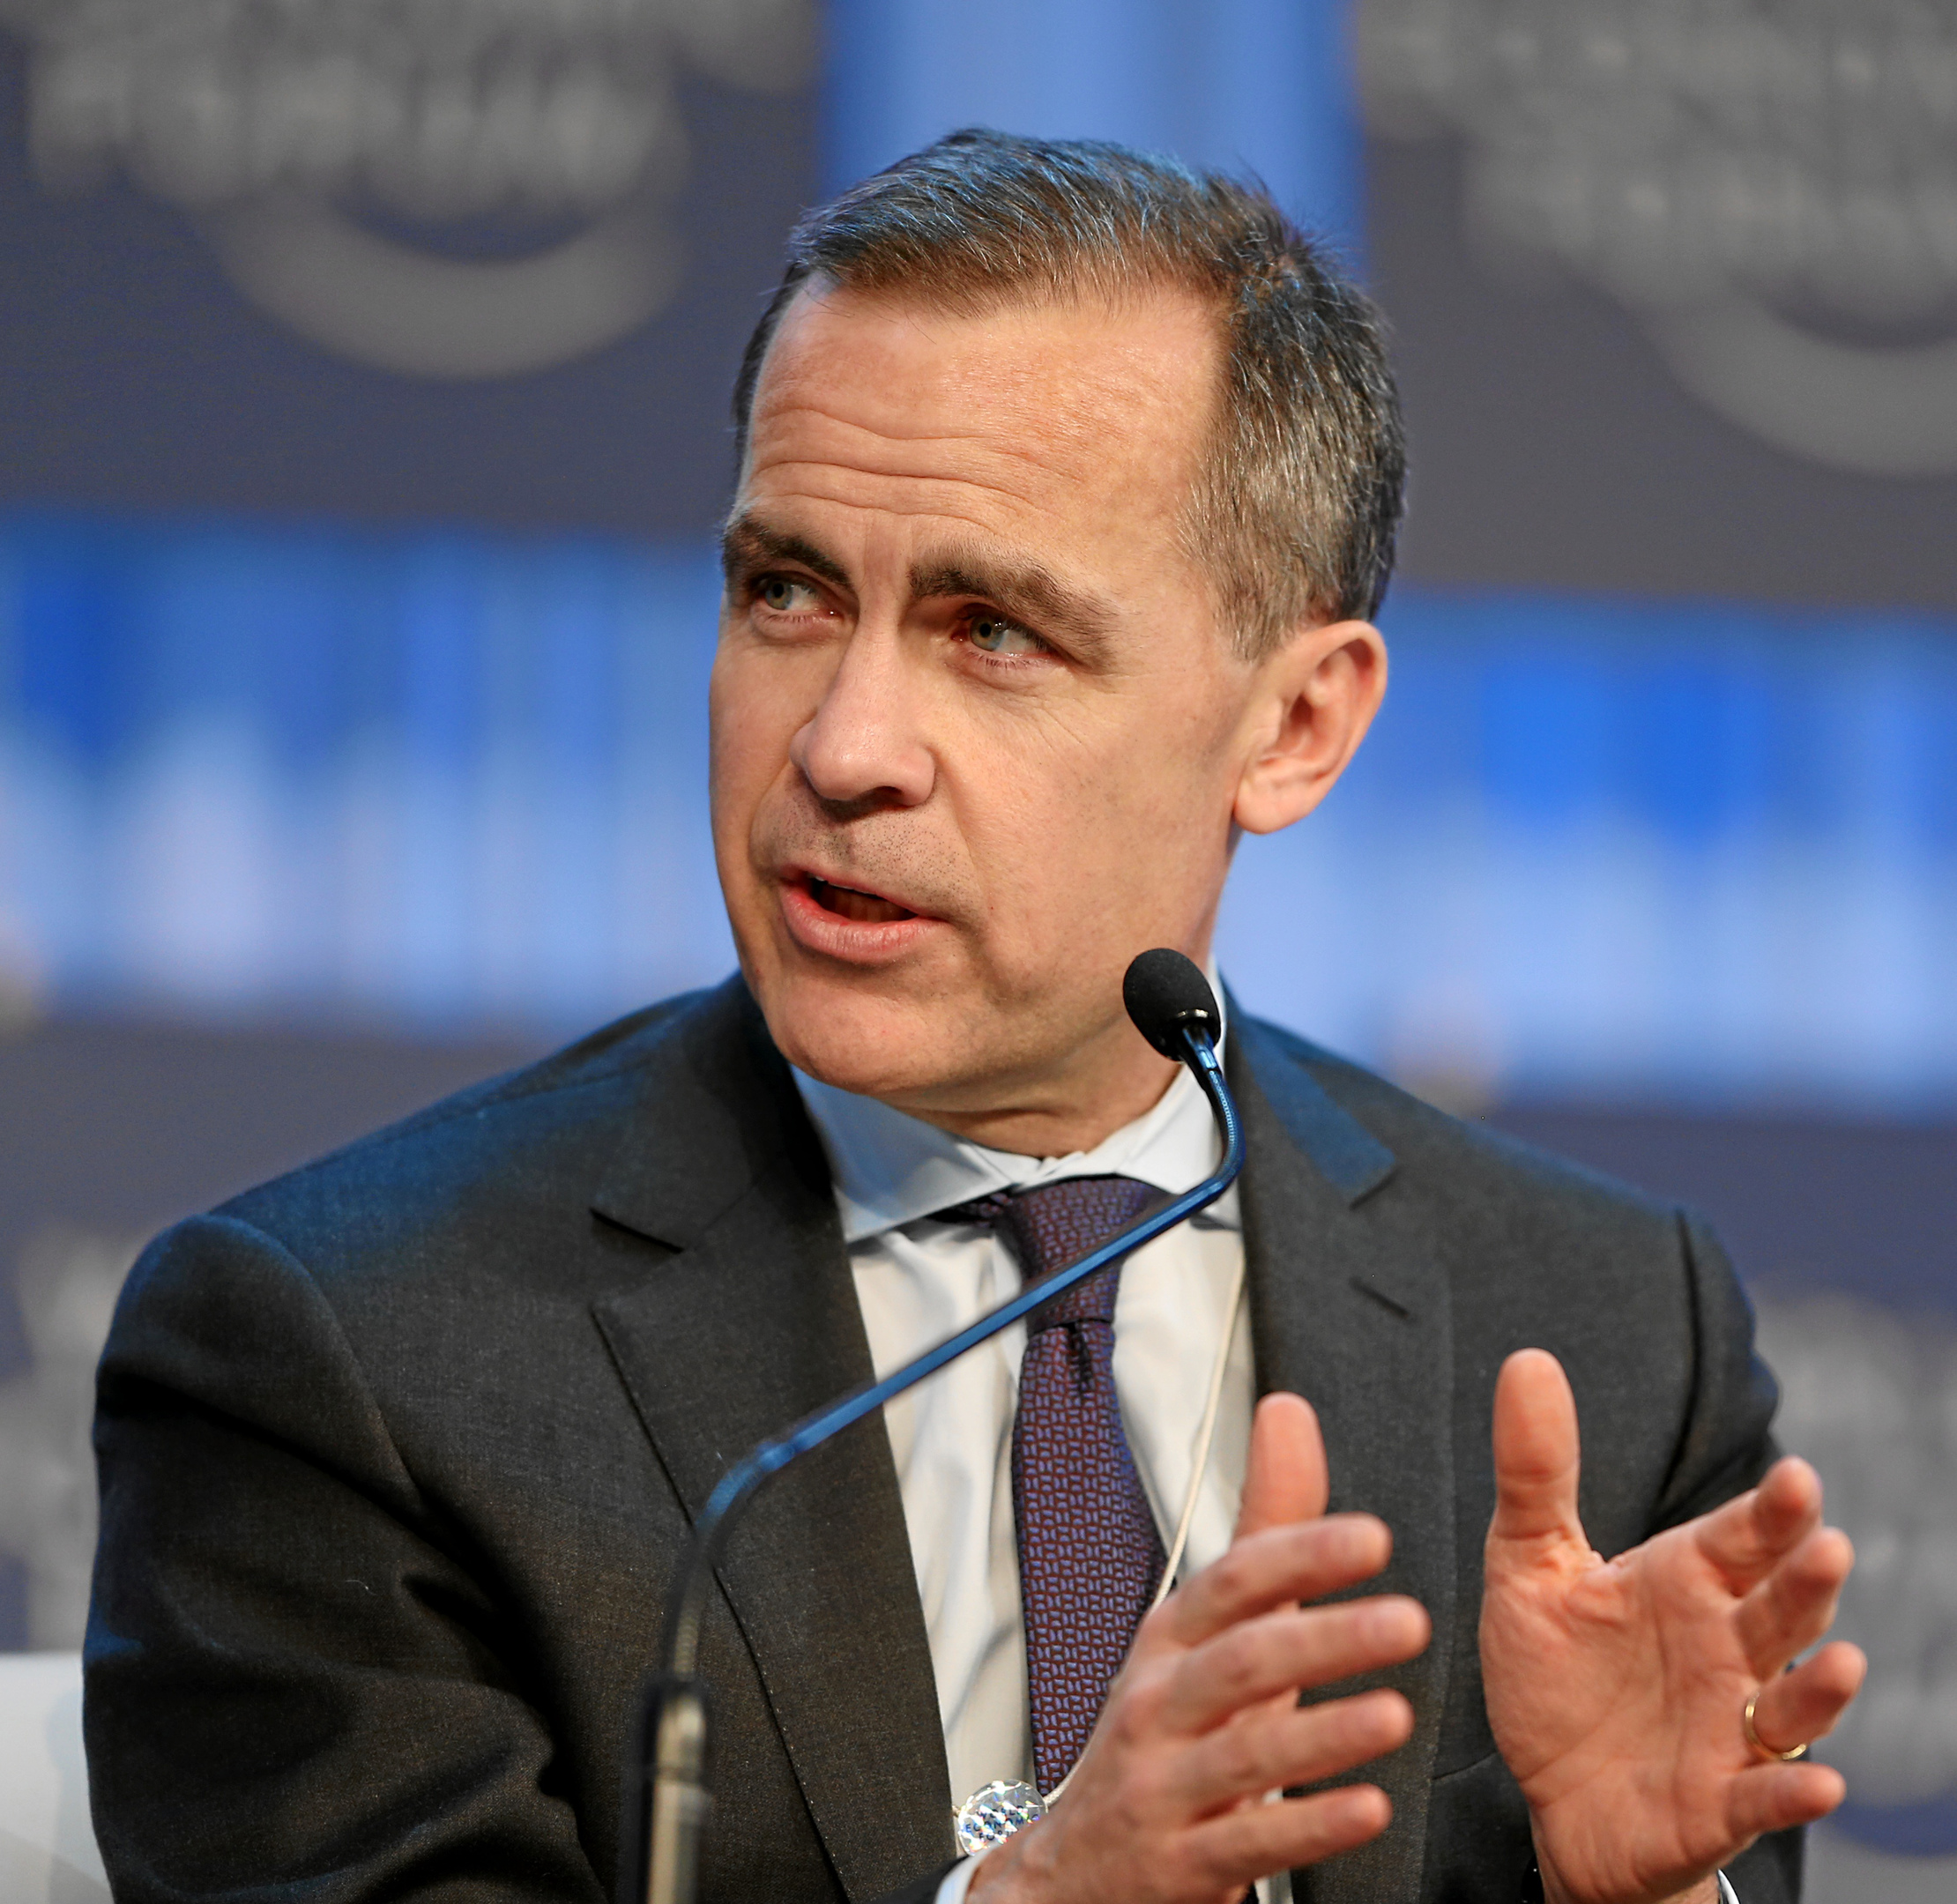 Mark Carney, Bank of England